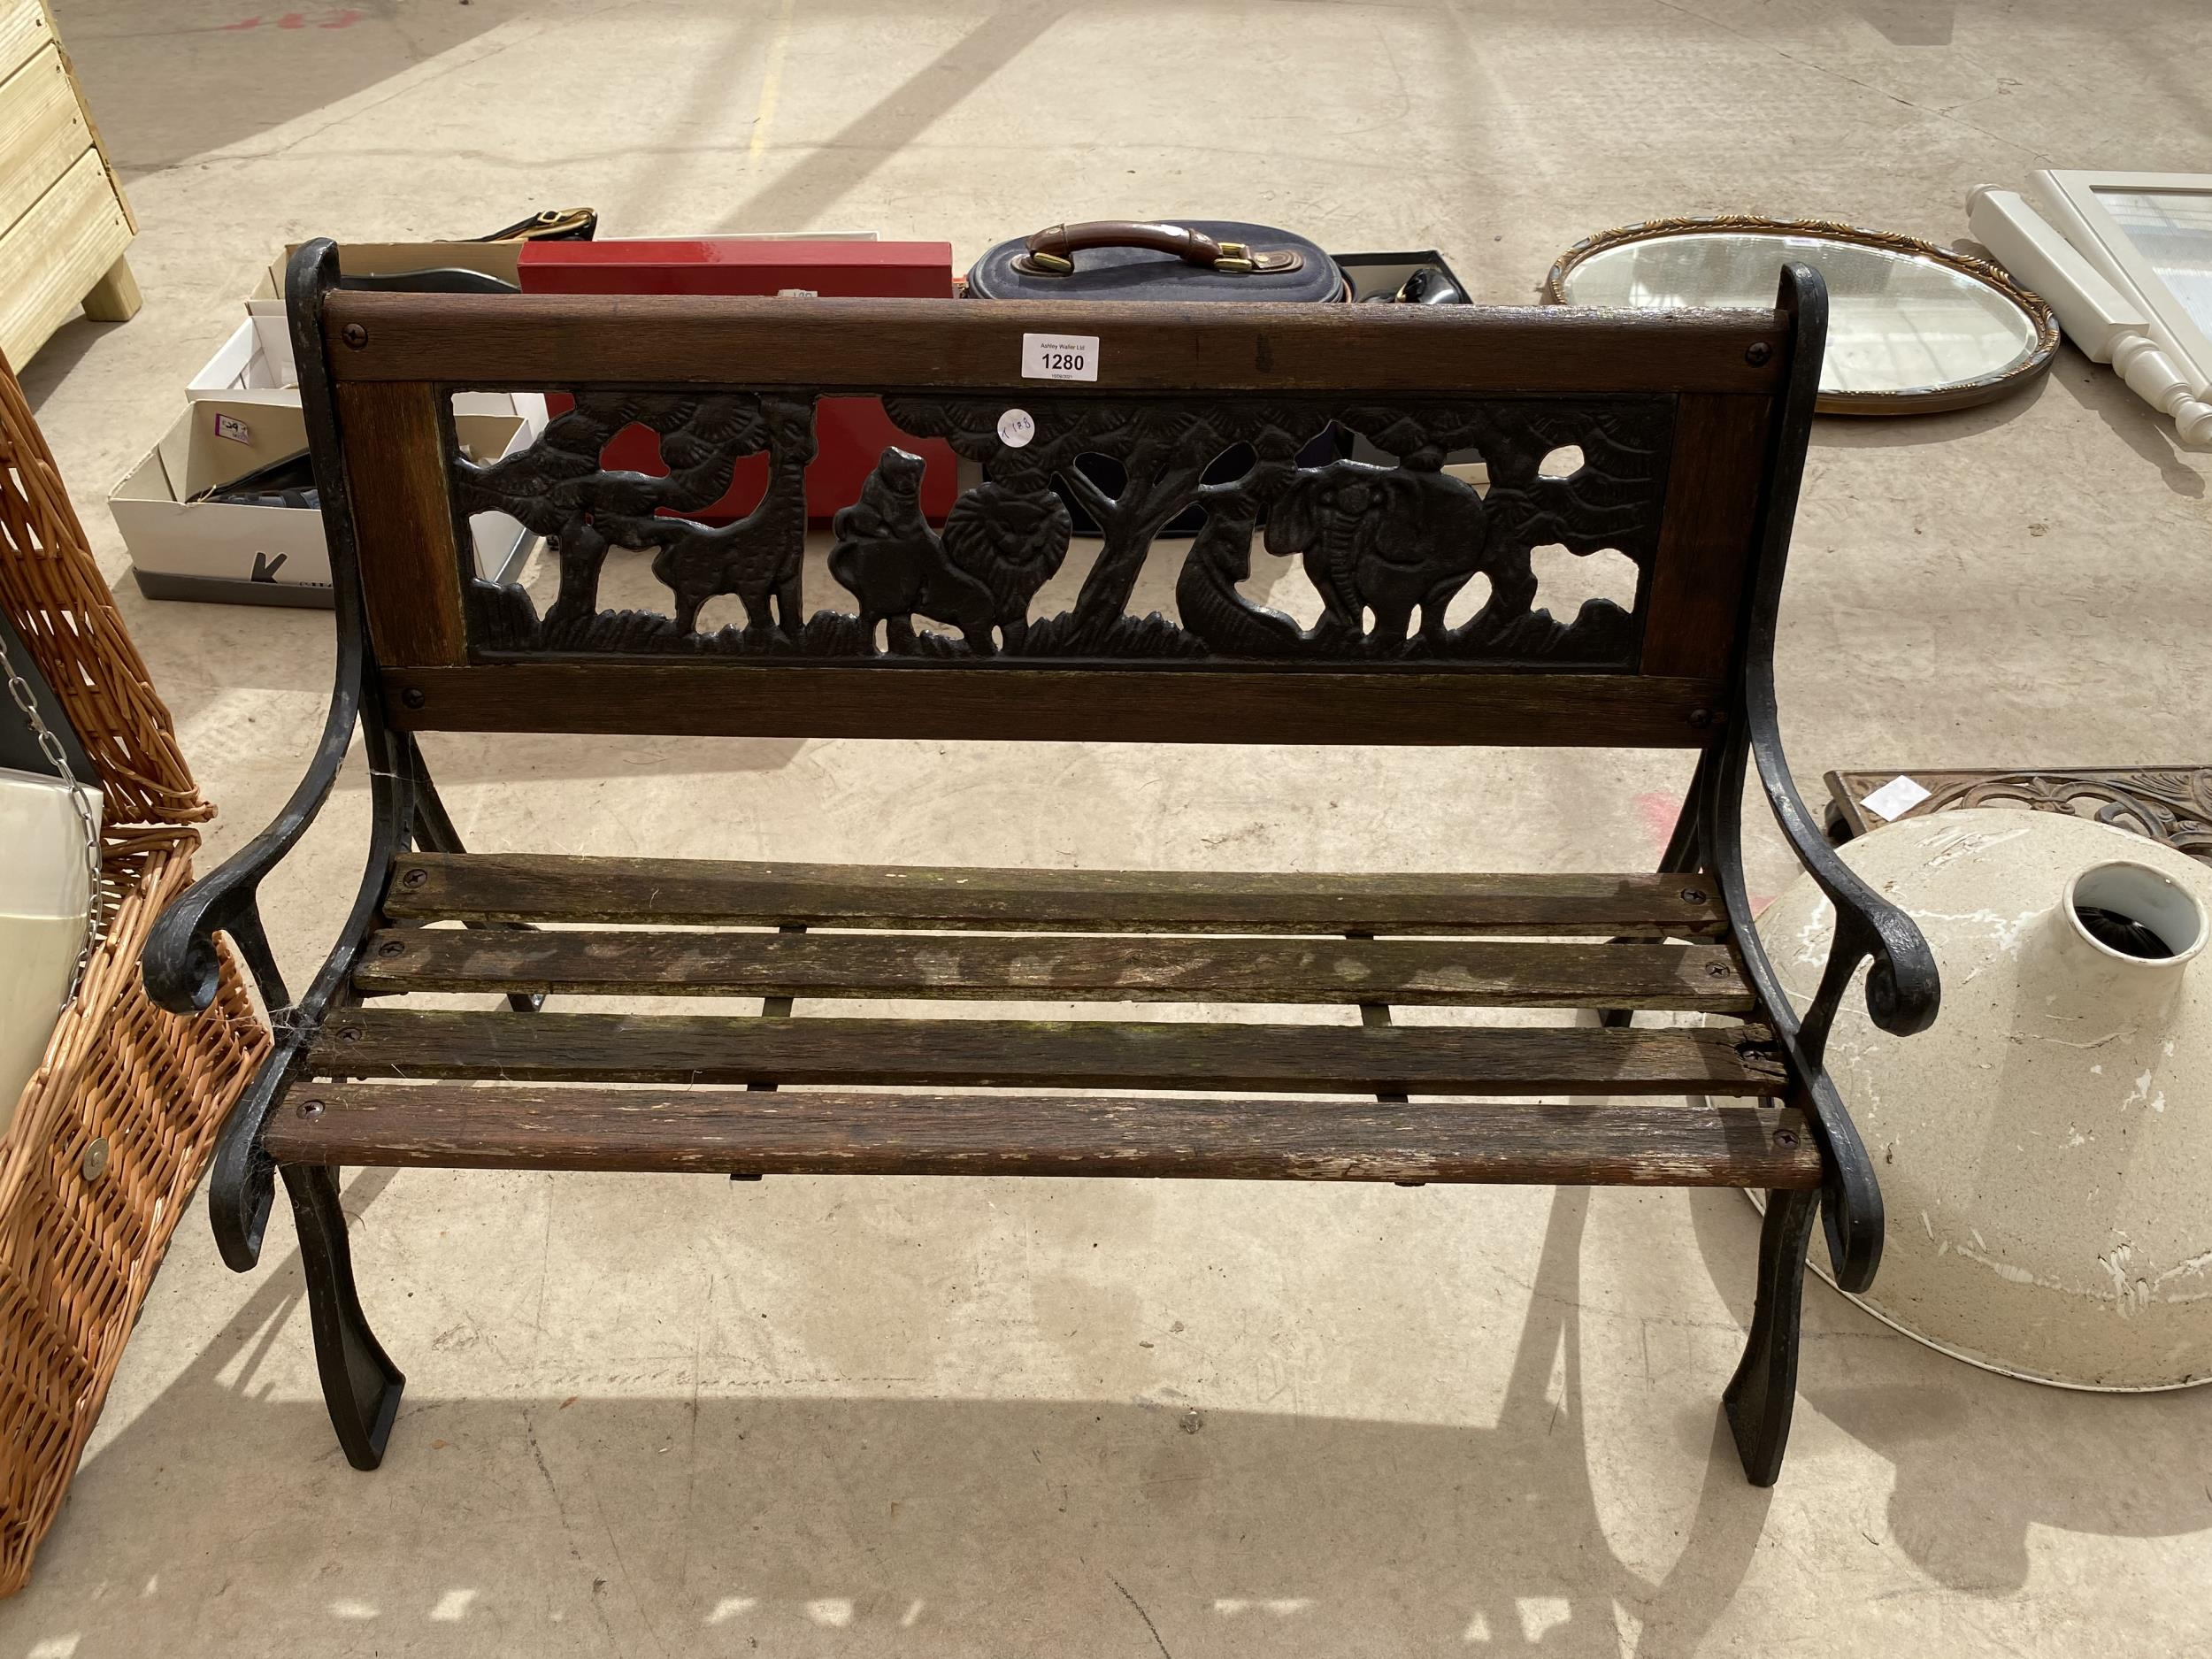 A SMALL CHILDRENS GARDEN BENCH WITH CAST BENCH ENDS AND A CAST BACK DEPICTING A SAFARI SCENE